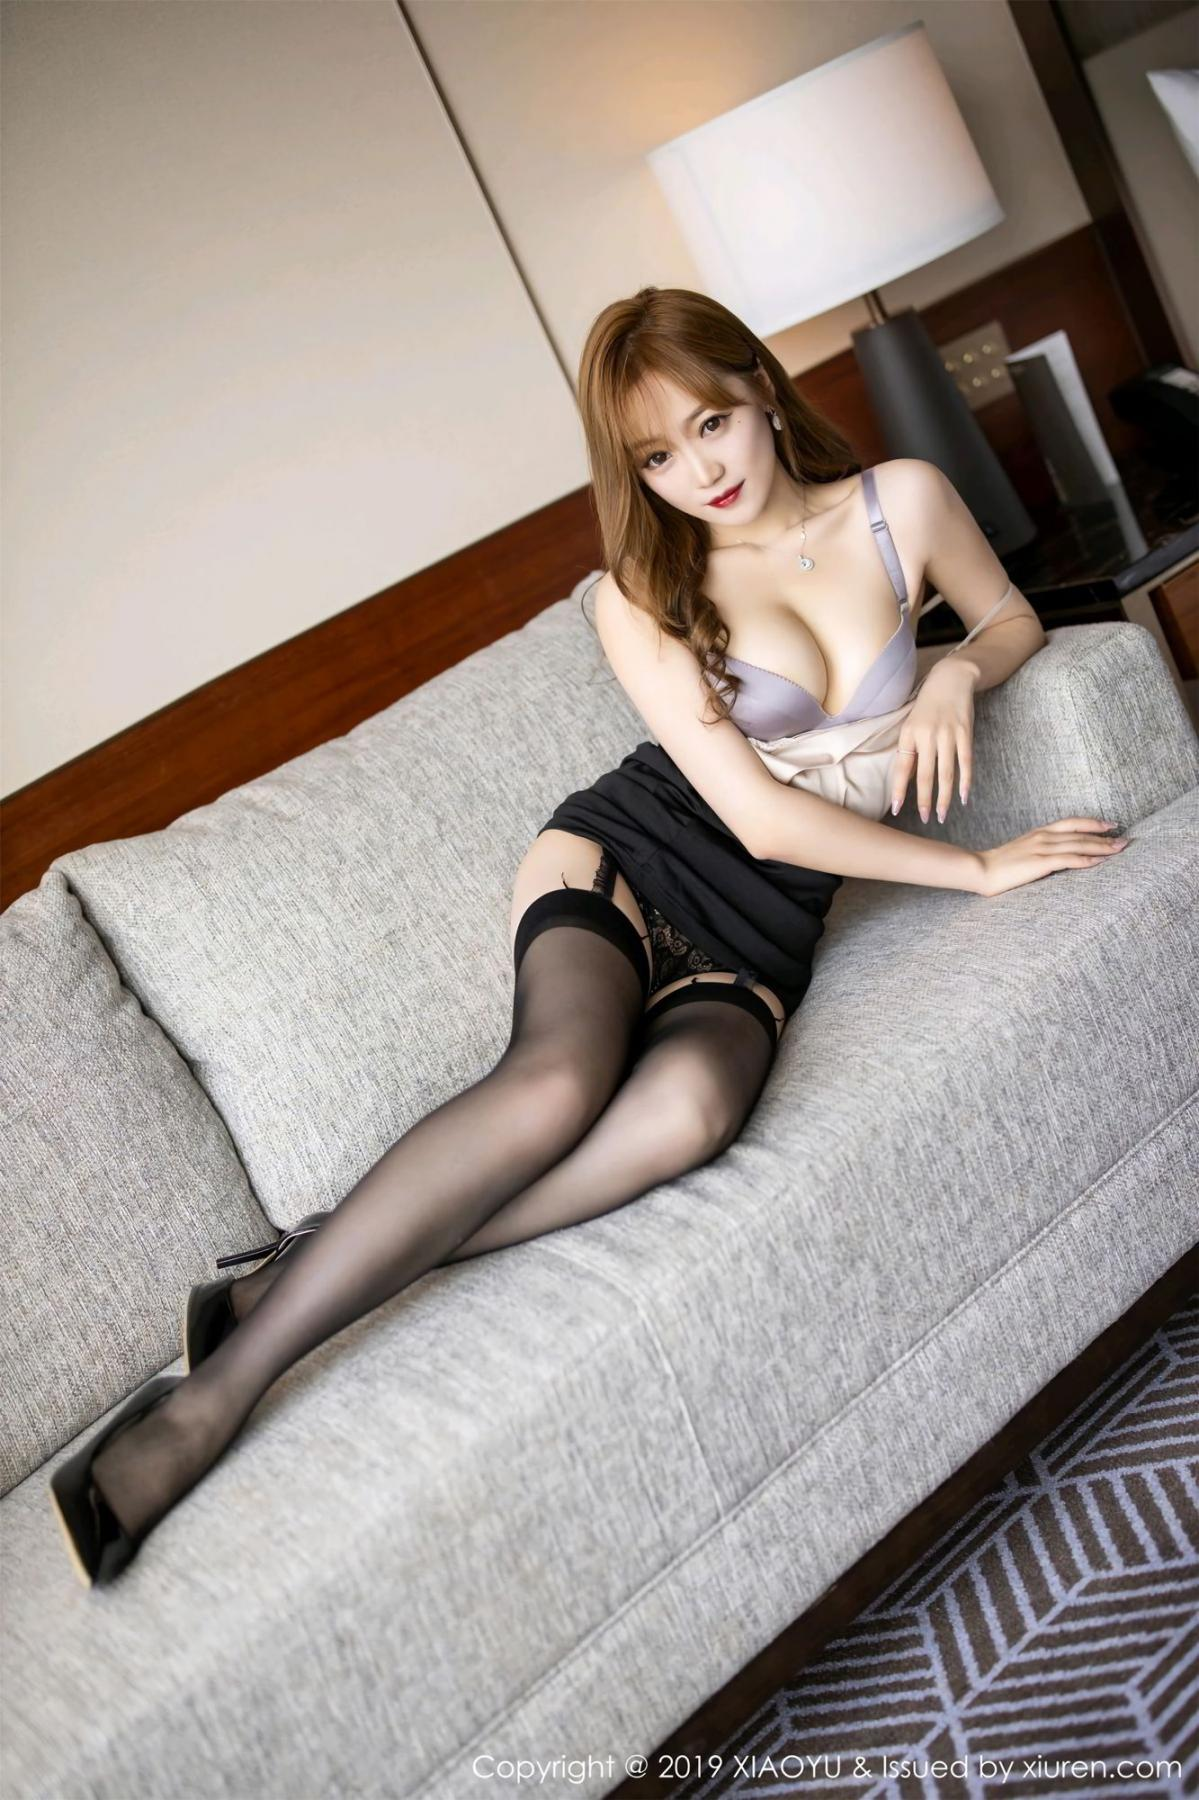 [XiaoYu] Vol.120 Yuner Claire 29P, Black Silk, Tall, XiaoYu, Yuner Claire